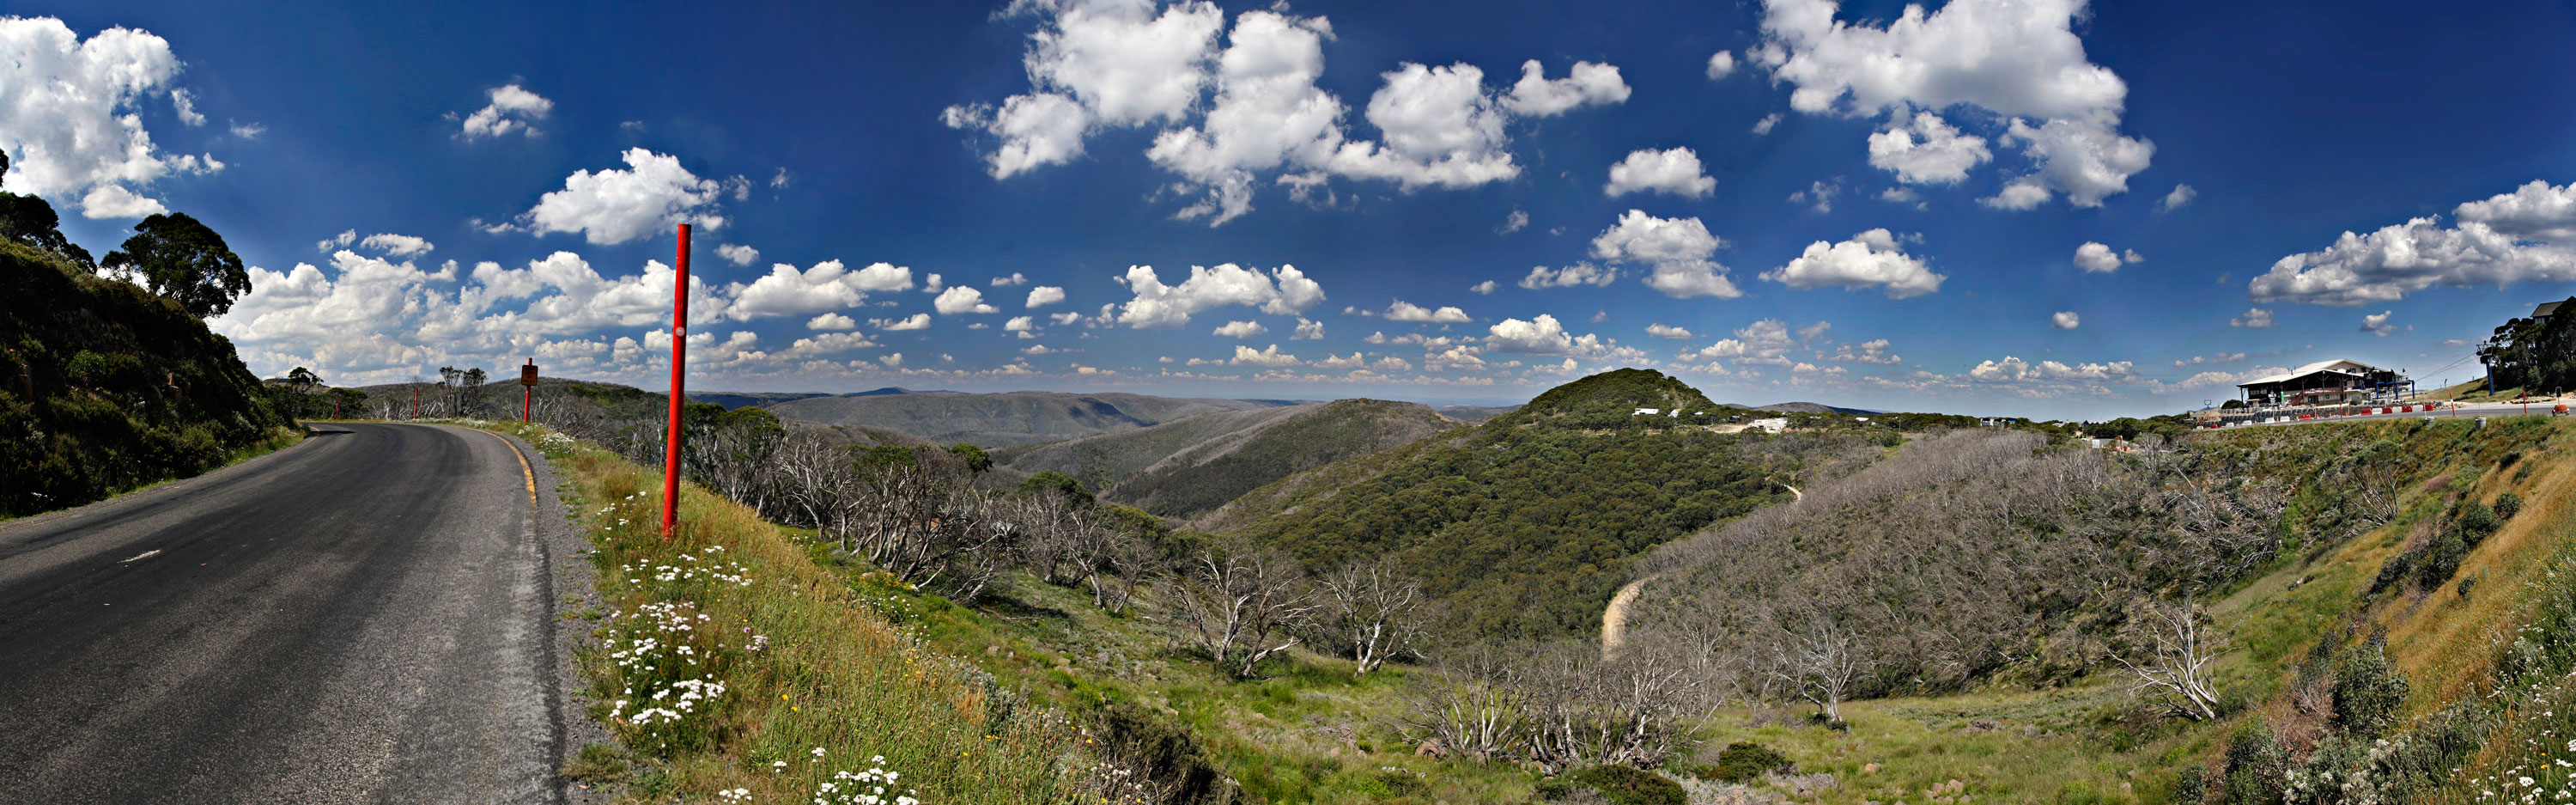 Summer in the Mount Hotham area - show another panorama